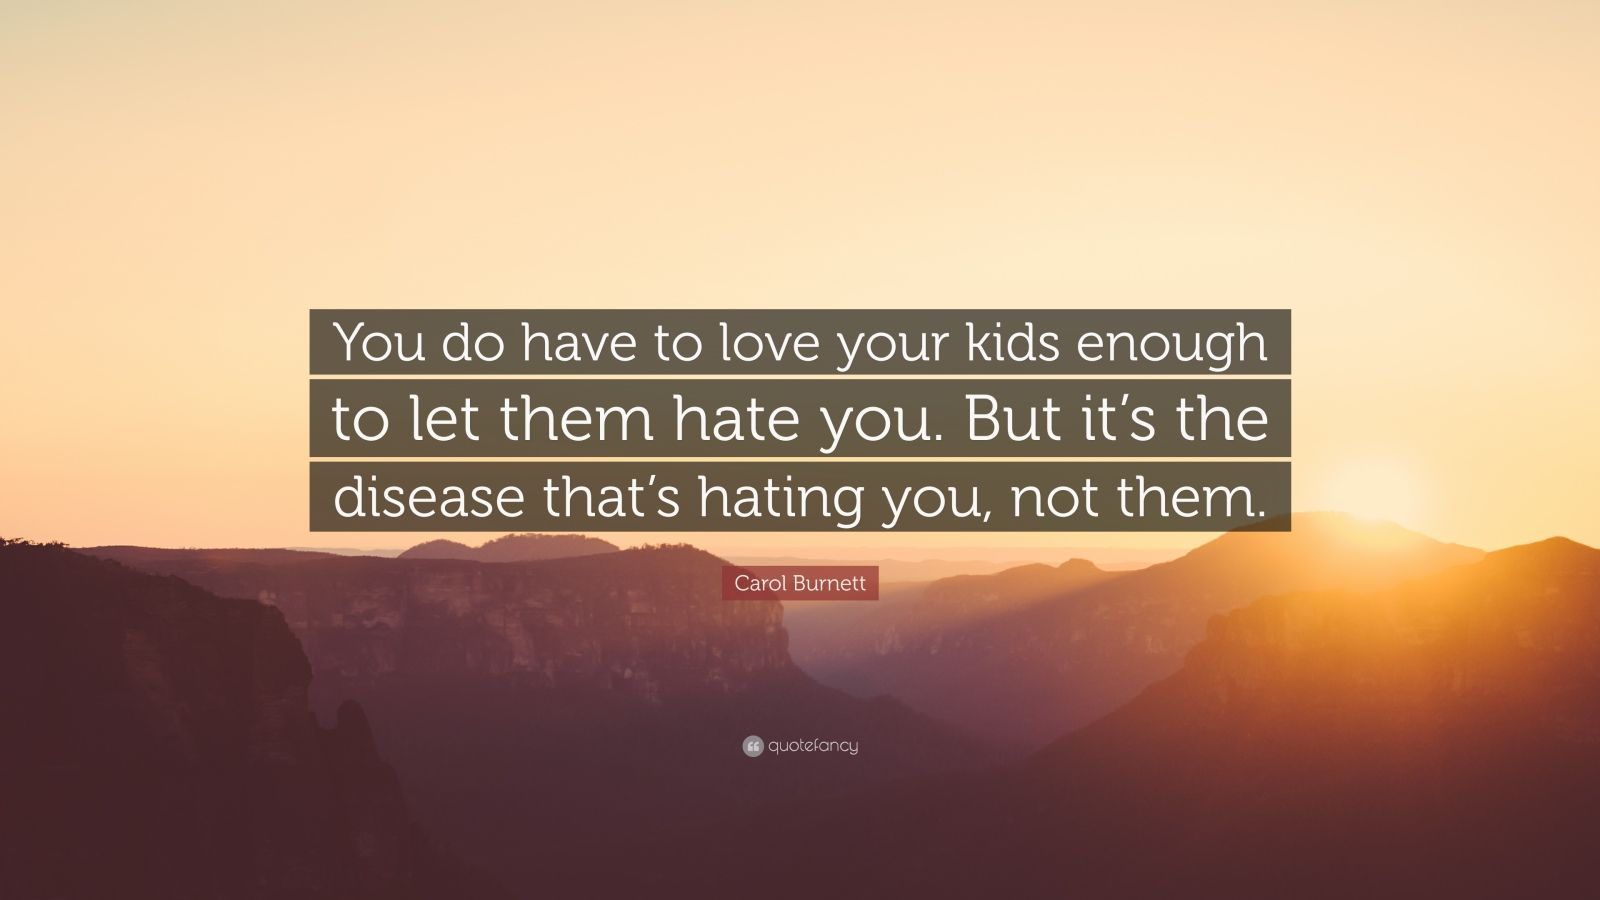 """Carol Burnett Quote: """"You do have to love your kids enough to let them hate you. But it's the disease that's hating you, not them."""""""